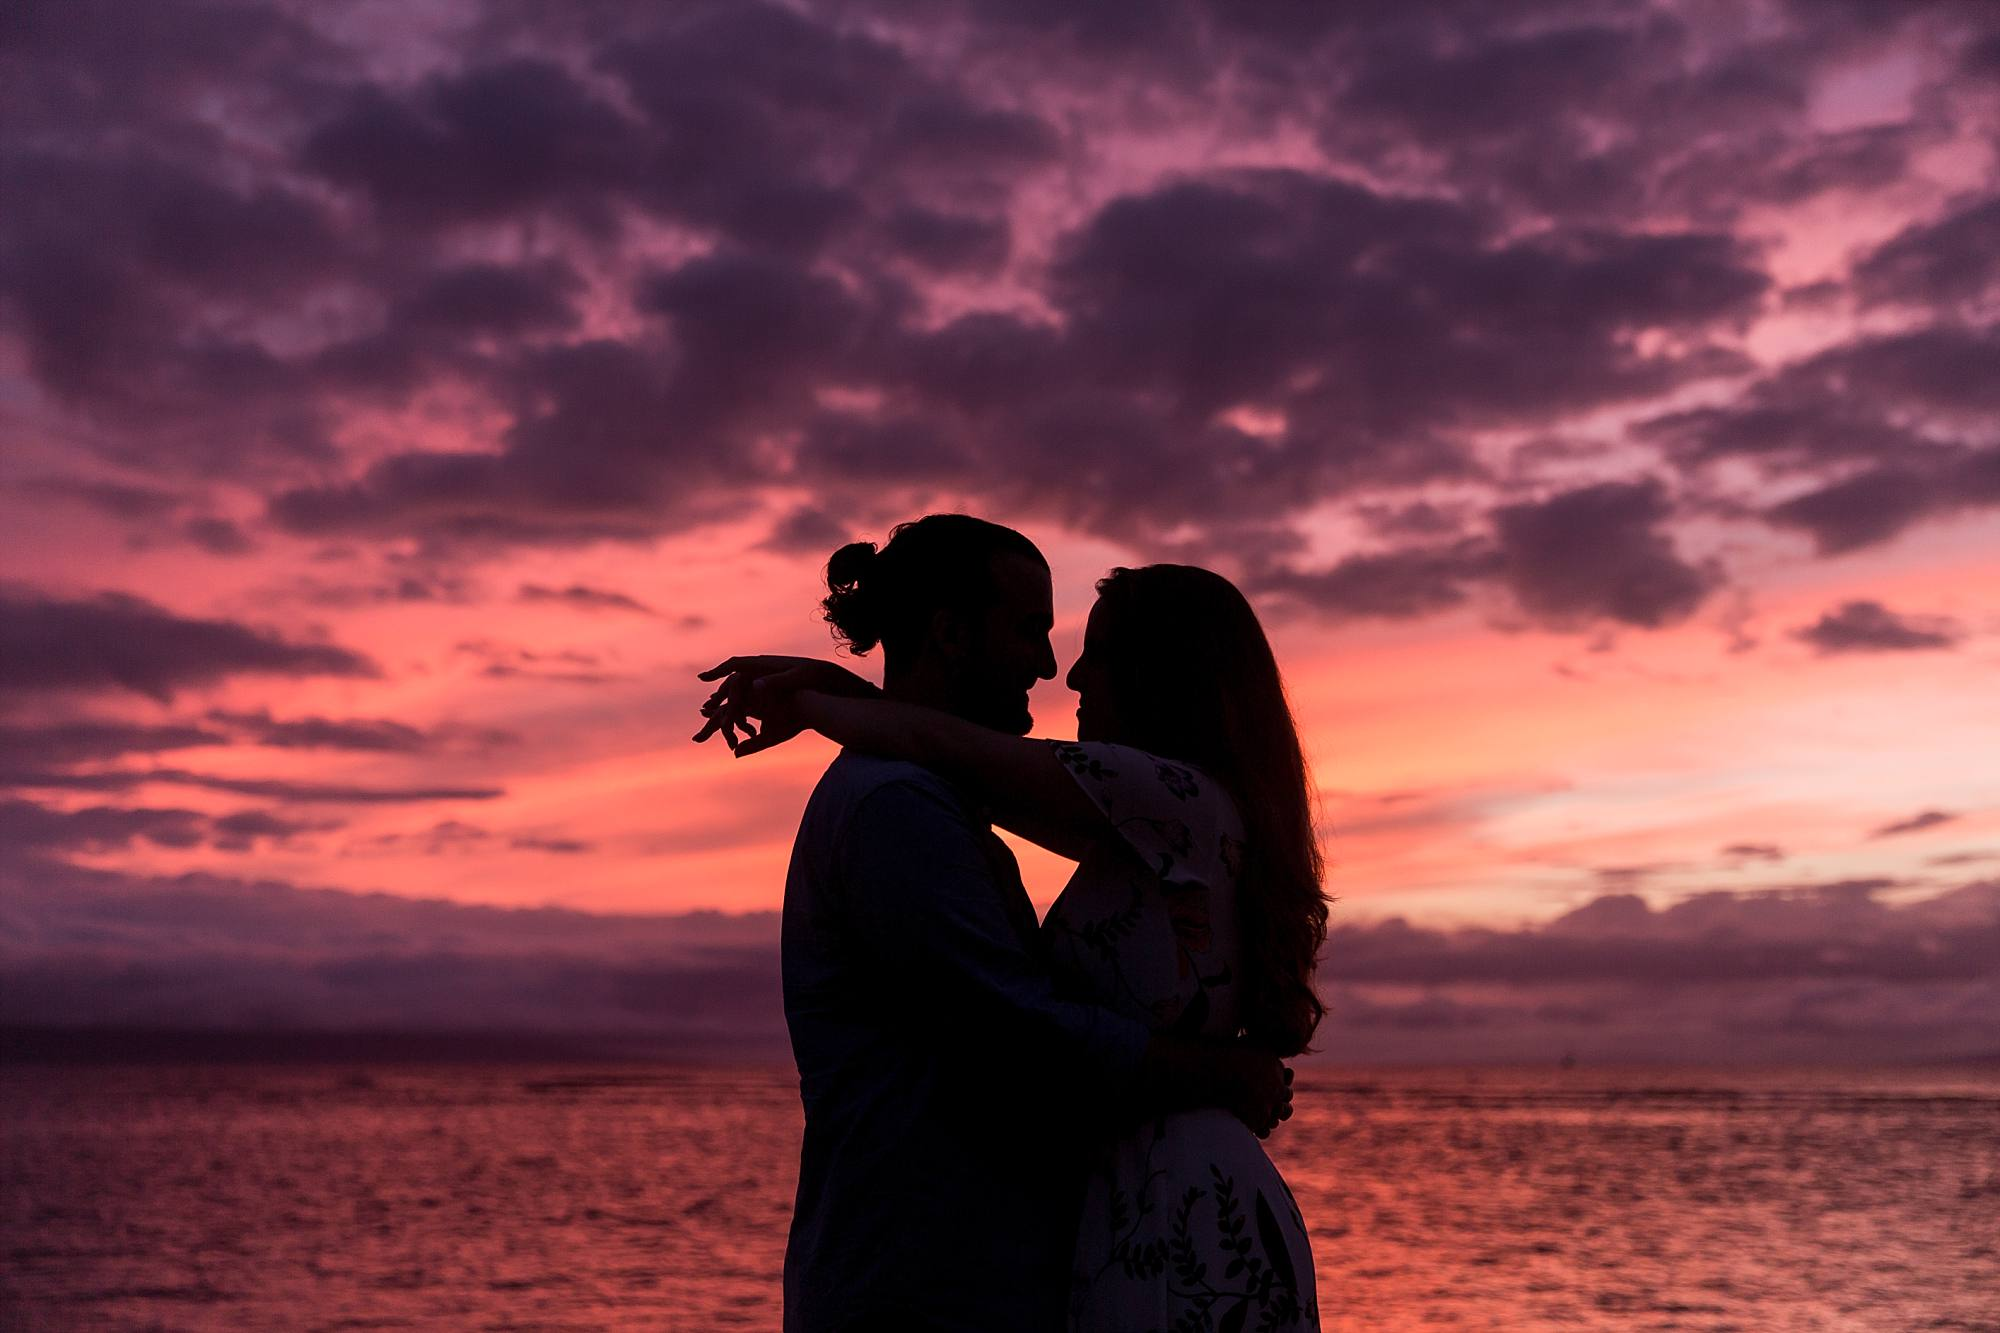 Proposal ideas | How to plan a proposal | Proposal pictures | Beach proposal | Beach proposal ideas | Proposal | Hawaii proposal | Maui Proposal | Maui proposal ideas | Hawaii Engagement Photographer | Maui Engagement Photographer | Engaged on Maui